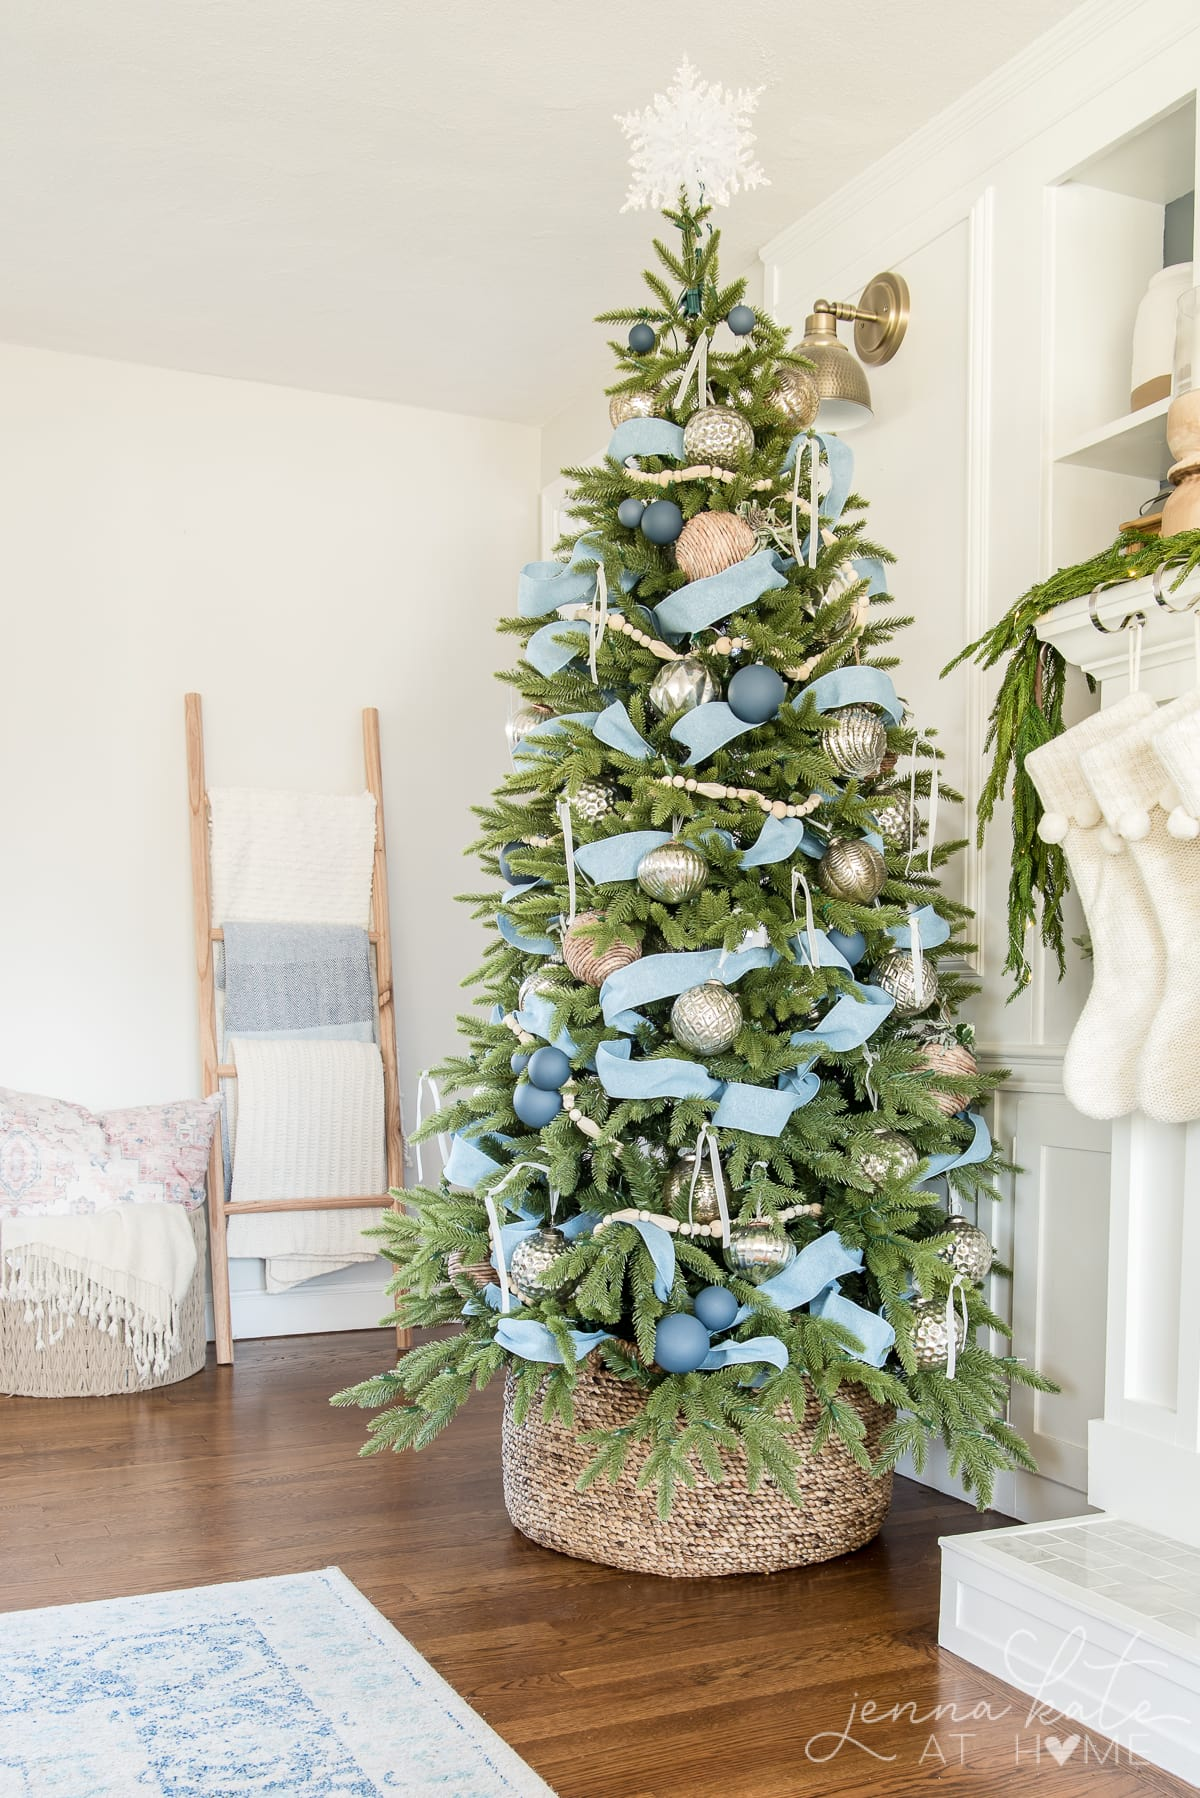 Artificial Christmas tree in a basket instead of a tree skirt or collar